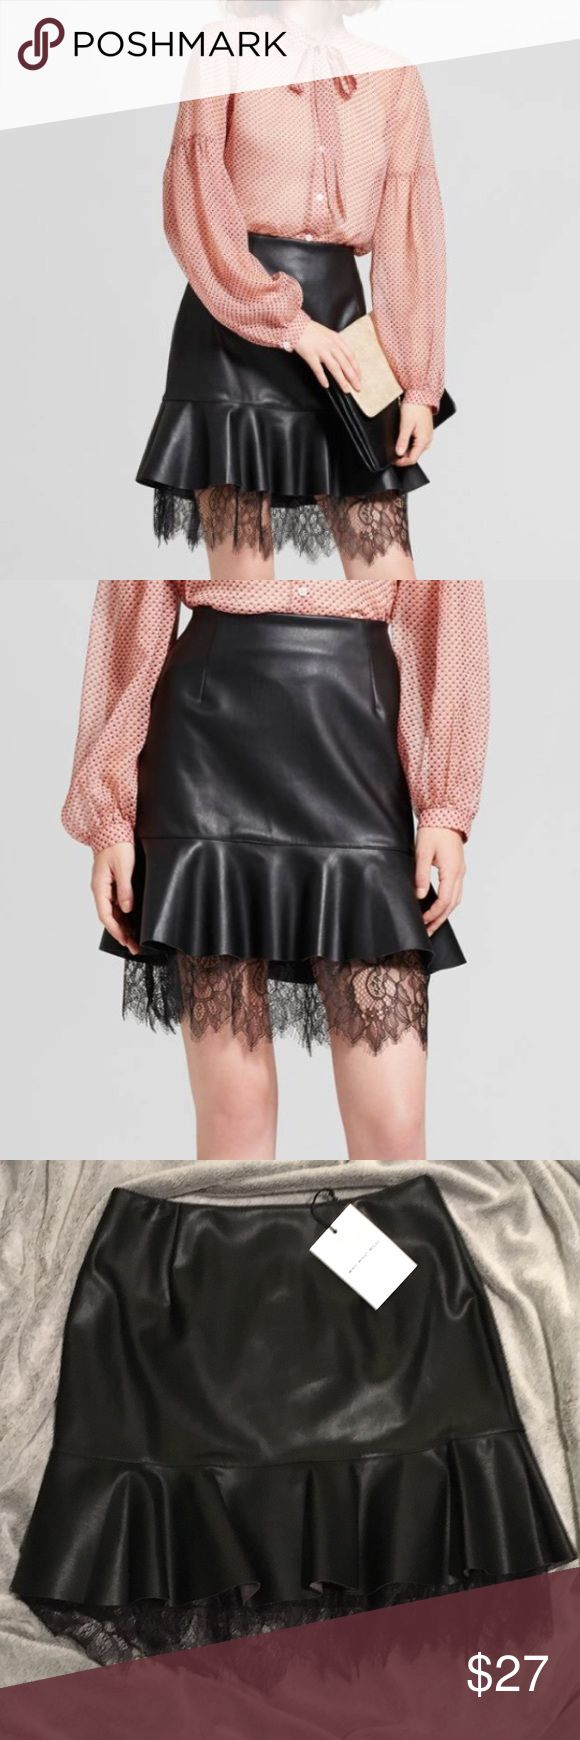 NWT Who What Wear Leather & Lace Layer Mini Skirt NWT never worn. The flirty cut of this Who What Wear Leather & Lace Layered Mini Skirt gets even more playful with a second layer of lace peeking out from underneath a ruffled hem. A must for days when you want to dial up your feminine charm; comfy cut makes it an instant favorite to pair with sweaters and turtlenecks, tall boots and kicky ankle boots. Vegan Leather.  Closure Style: Back hook and zipper Care and Cleaning: Machine wash…